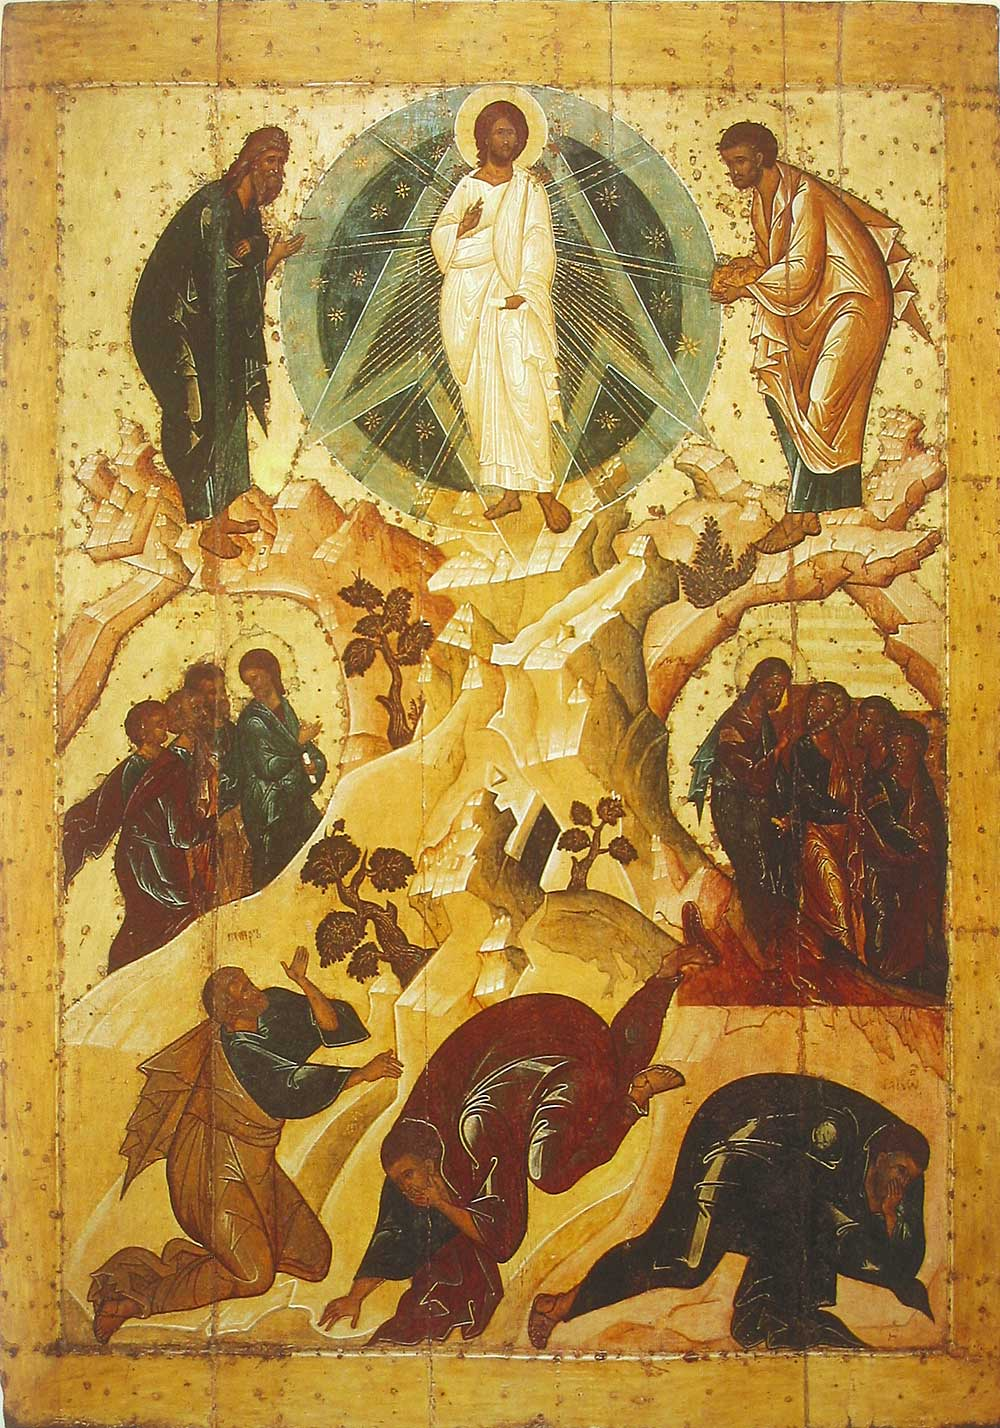 Icon in Yaroslavl, Russia, 1516, By Unknown - http://www.icon-art.info/masterpiece.php?mst_id=1123&where=library, Public Domain,https://commons.wikimedia .org/w/index.php?curid=6432608